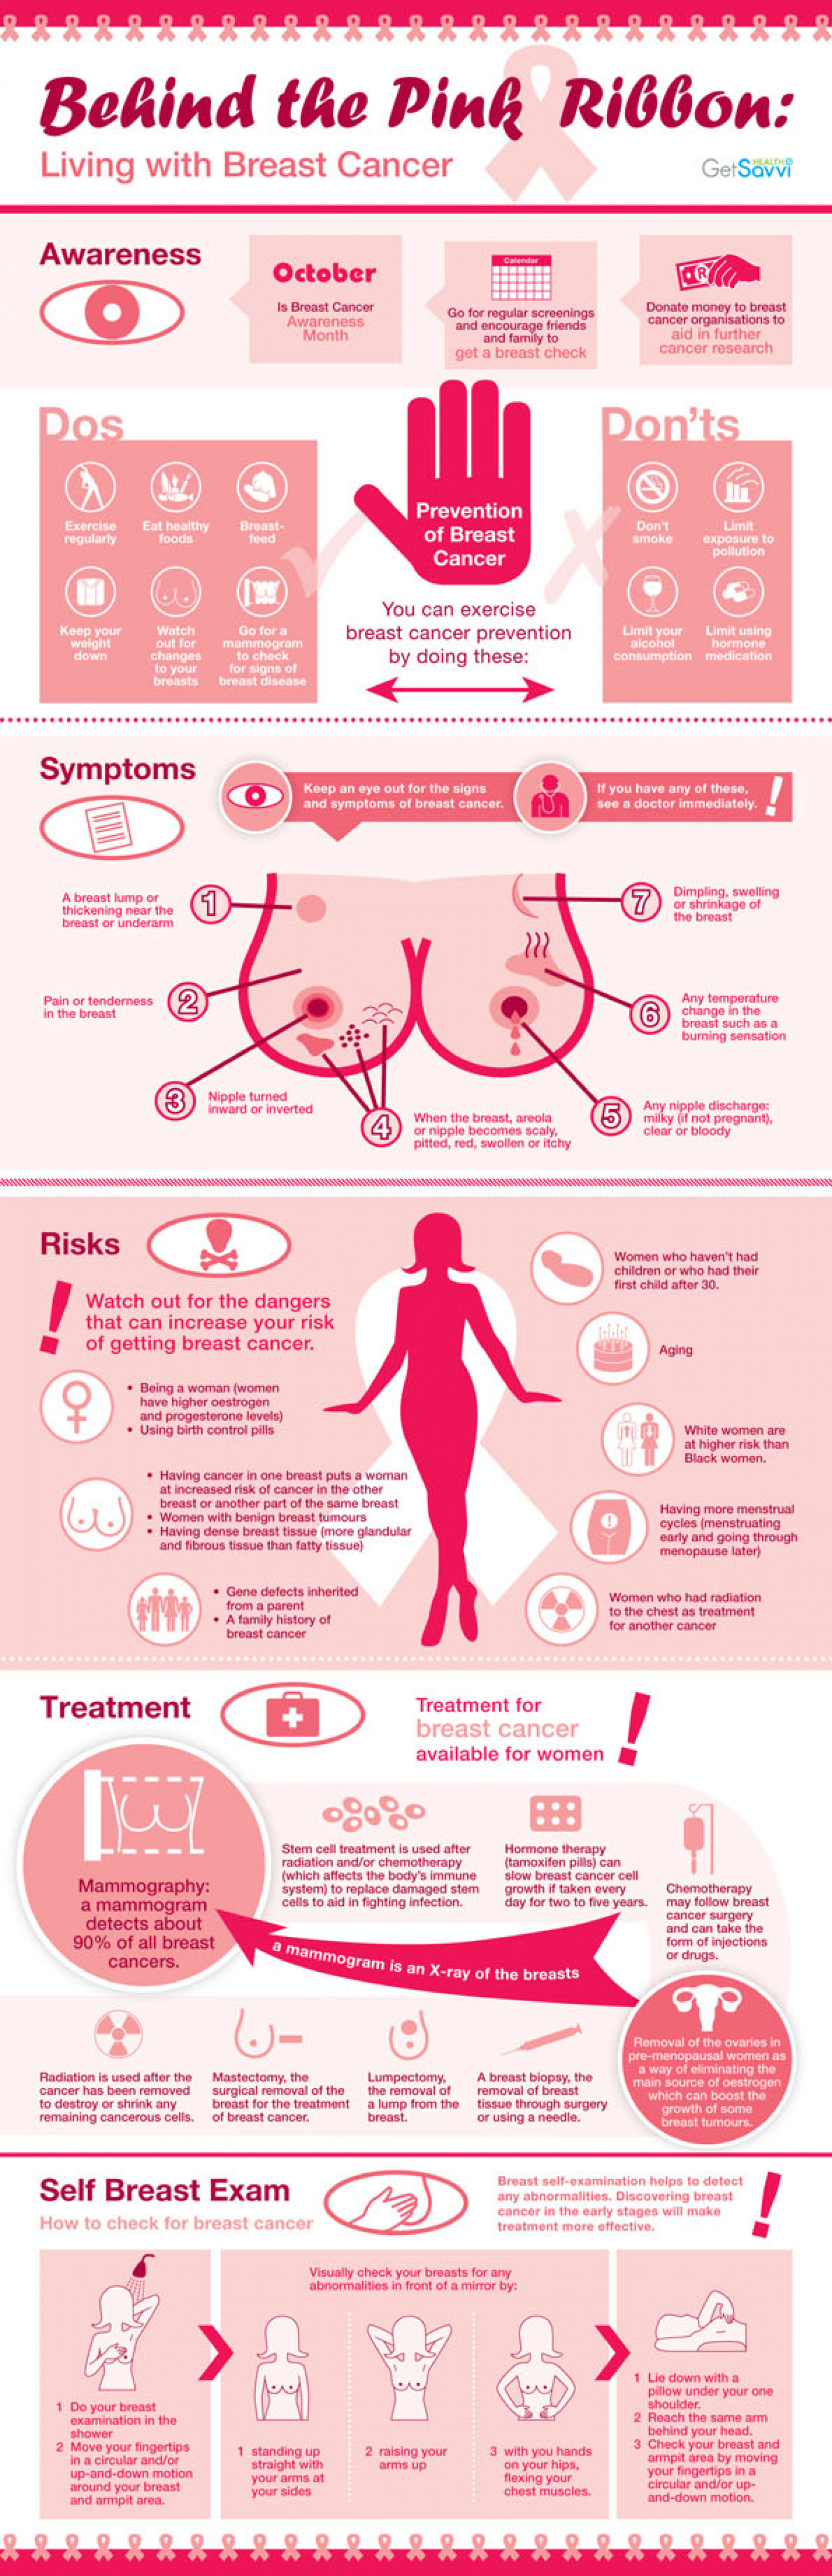 Behind the Pink Ribbon: Living with Breast Cancer Infographic